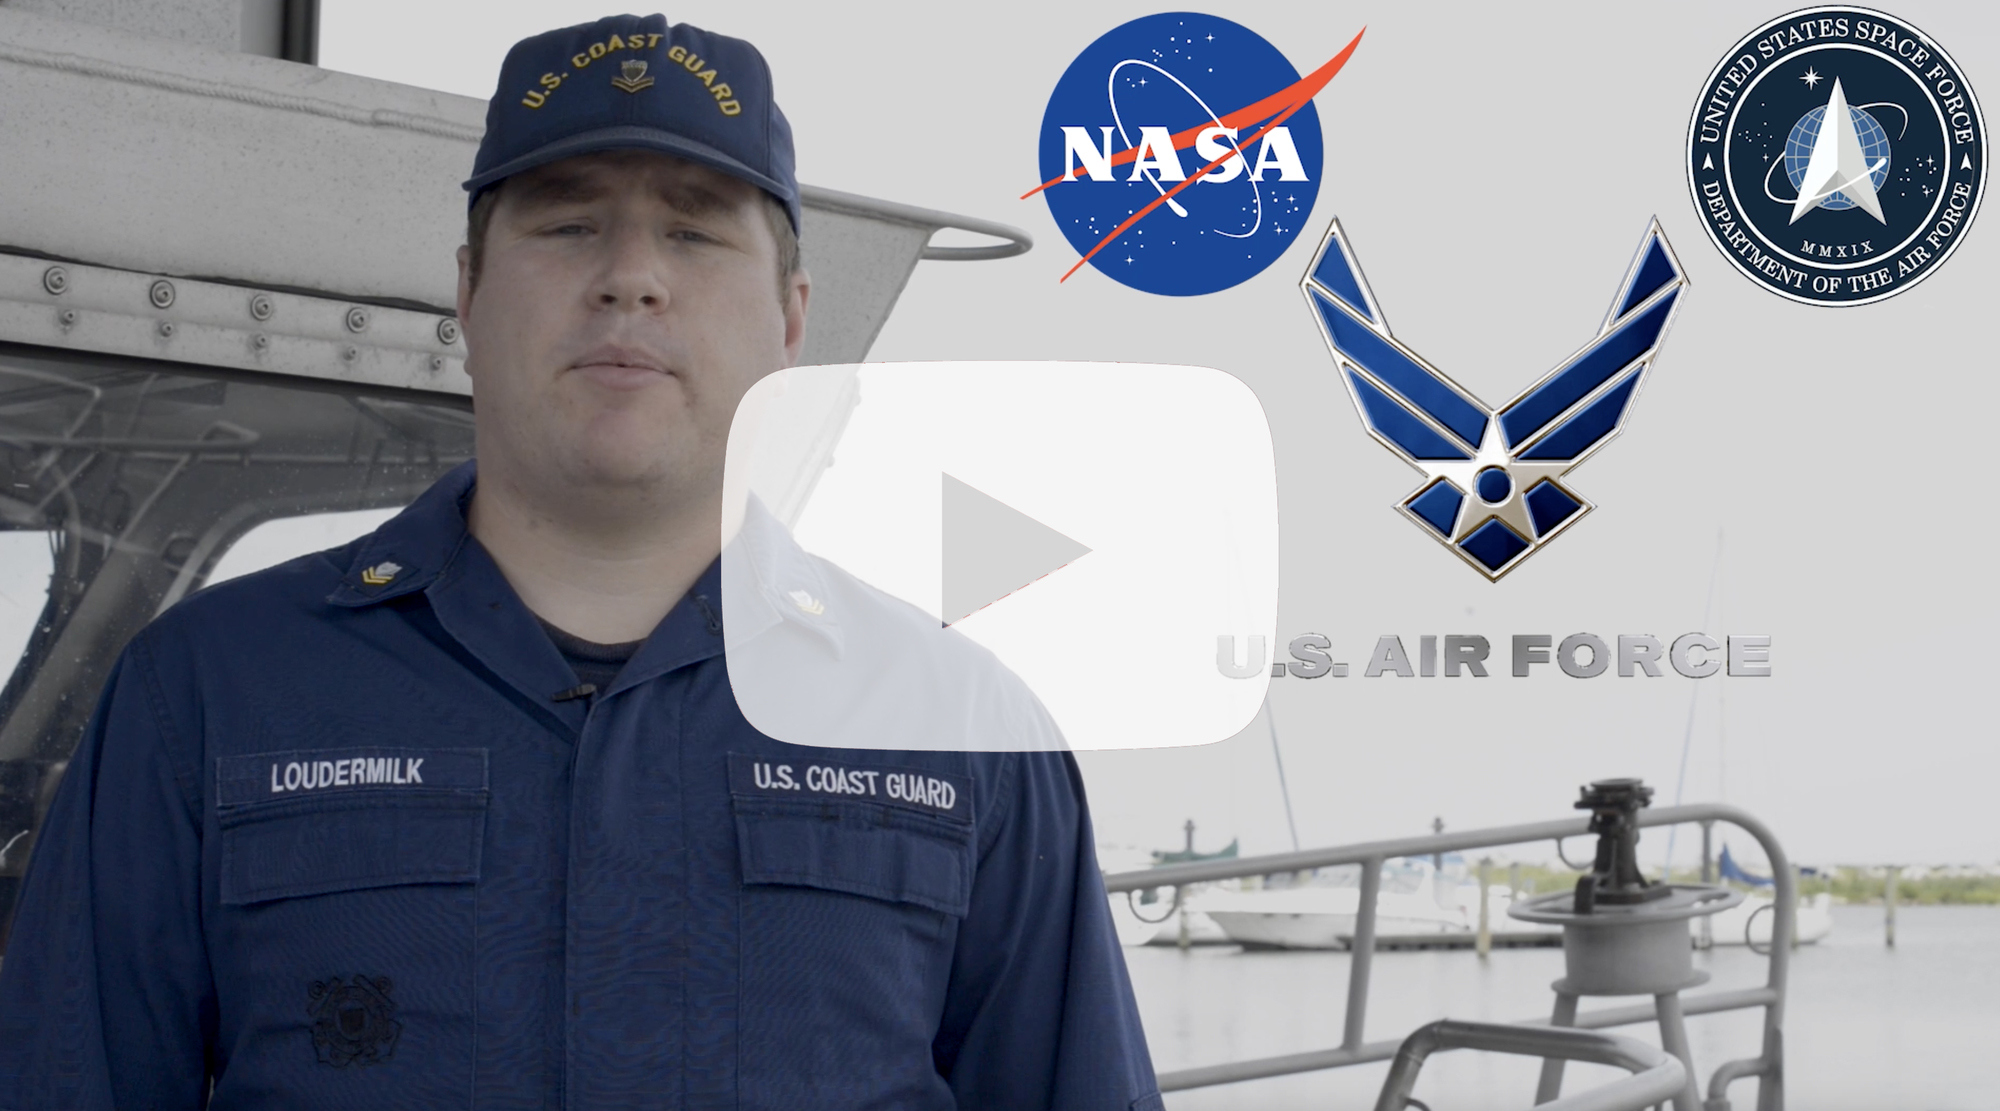 Petty Officer 2nd Class Lee Loudermilk, a boatswain's mate with Coast Guard Station New Orleans, reminds mariners to stay back from maritime recovery sites during NASA's SpaceX Crew-1 mission recovery operations of spacecraft and astronauts with an anticipated splashdown in the Gulf of Mexico off the coast of Florida.